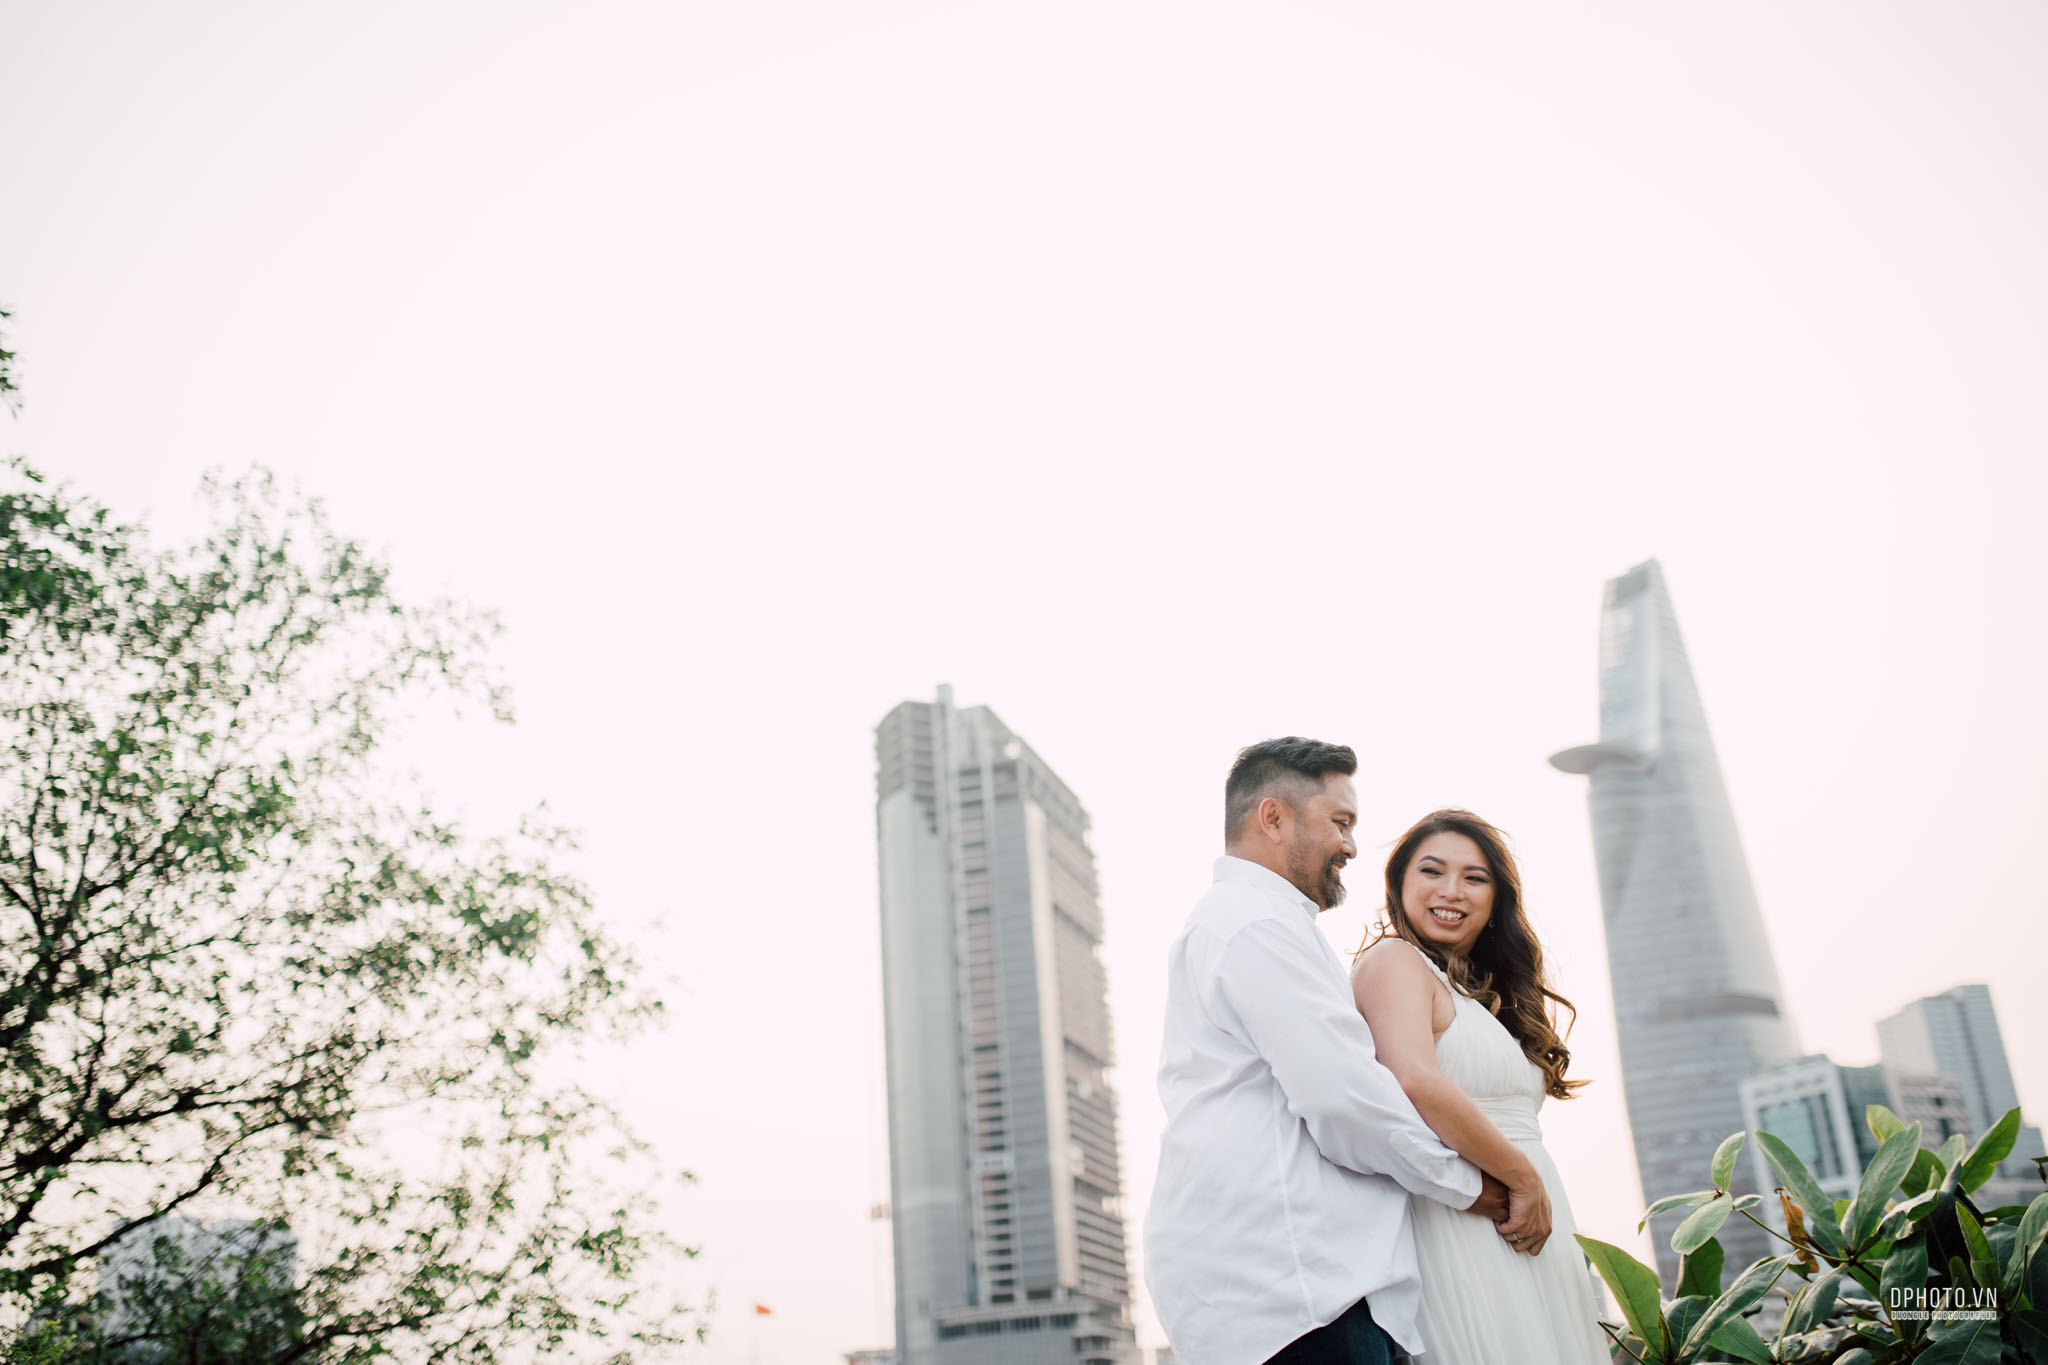 engagement_photographer_ho_chi_minh_vietnam_62